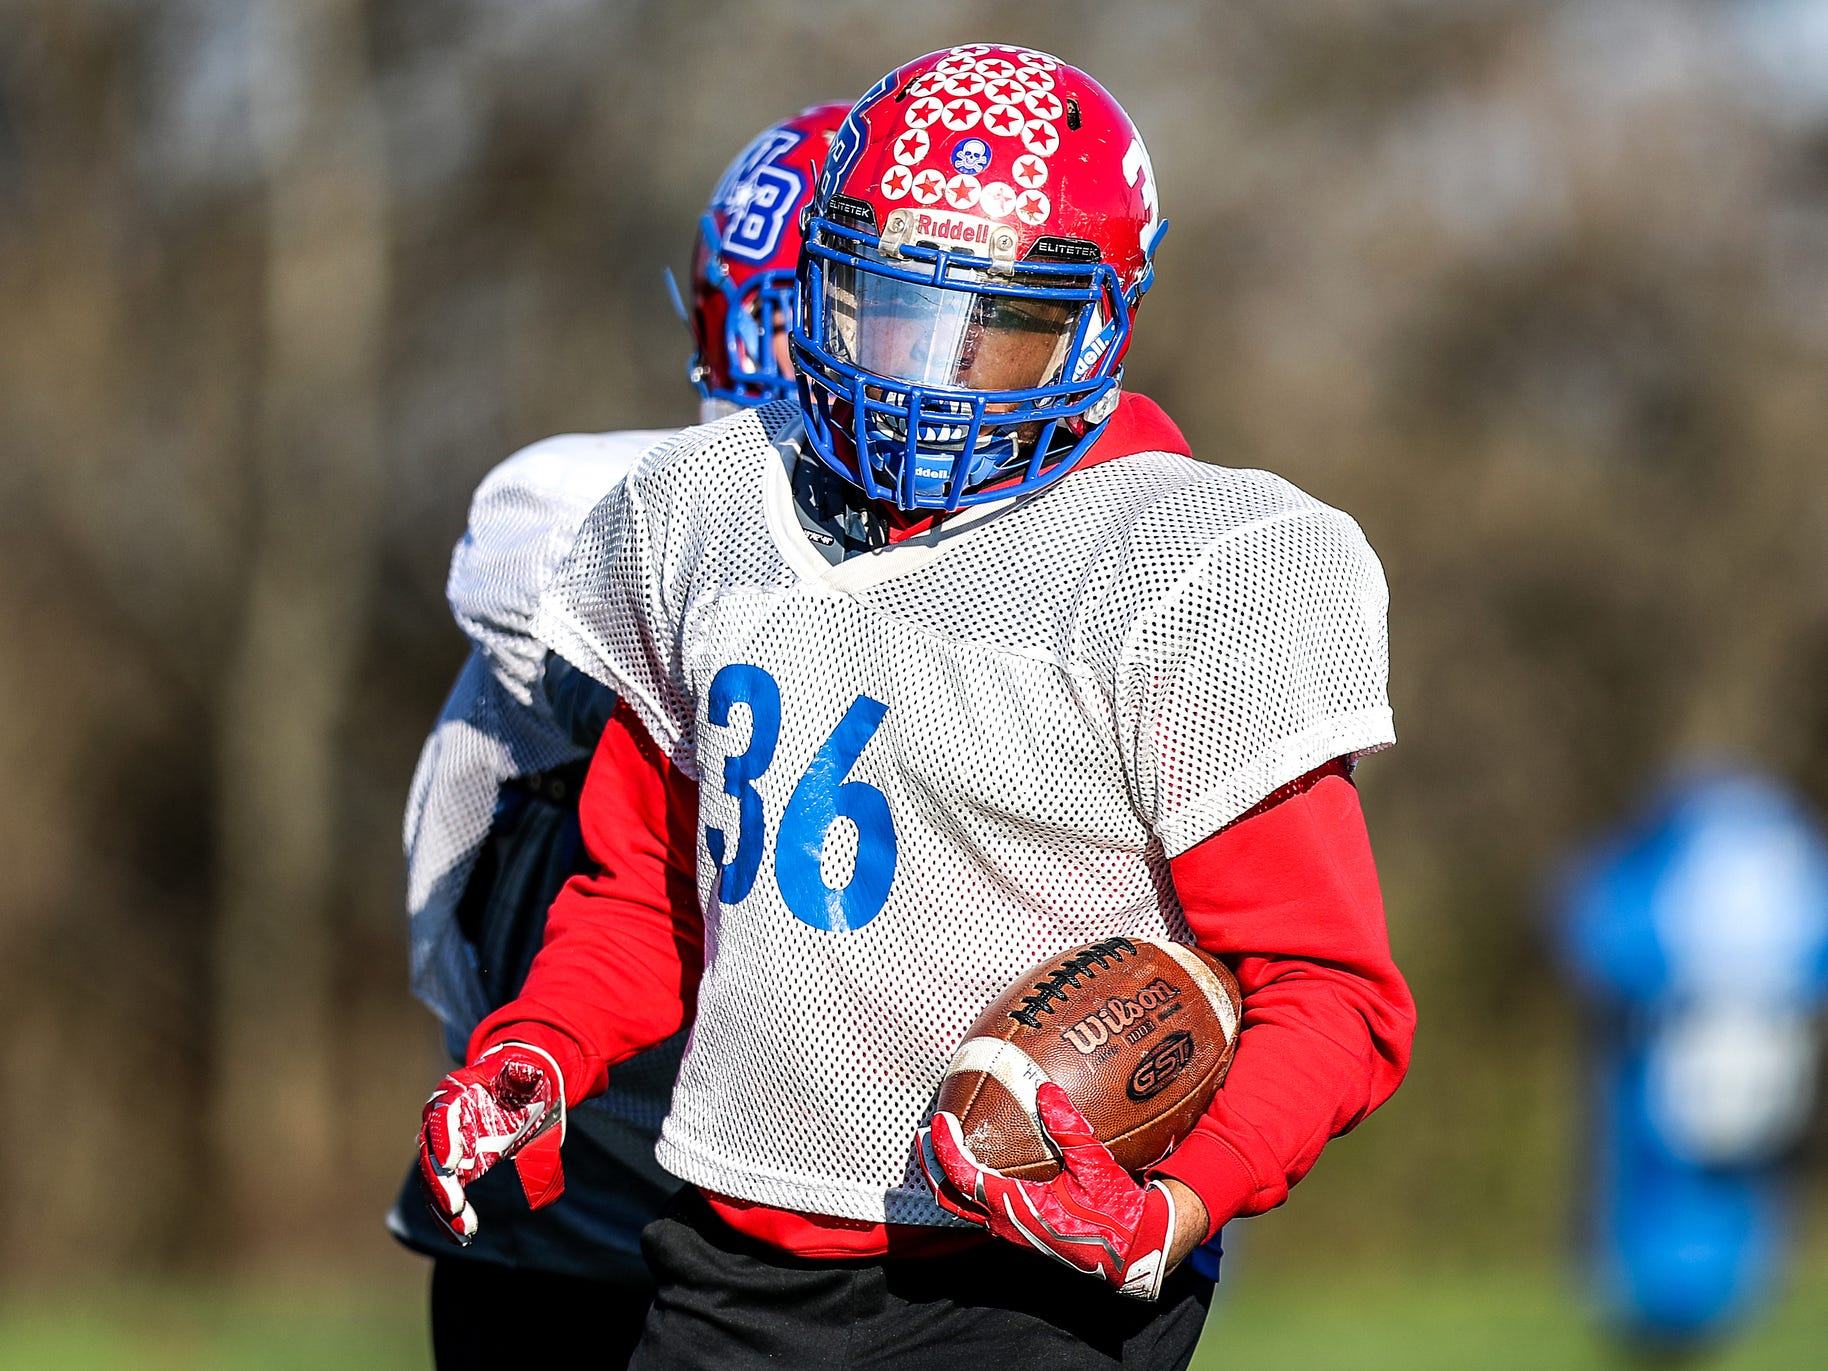 Stars running back Kruze Washington (36) holds the ball after finishing a practice drill at Western Boone Junior-Senior High School in Thornton, Ind., Wednesday, Nov. 7, 2018. Western Boone faces Scecina on Friday, Nov. 9, in the regional championship.